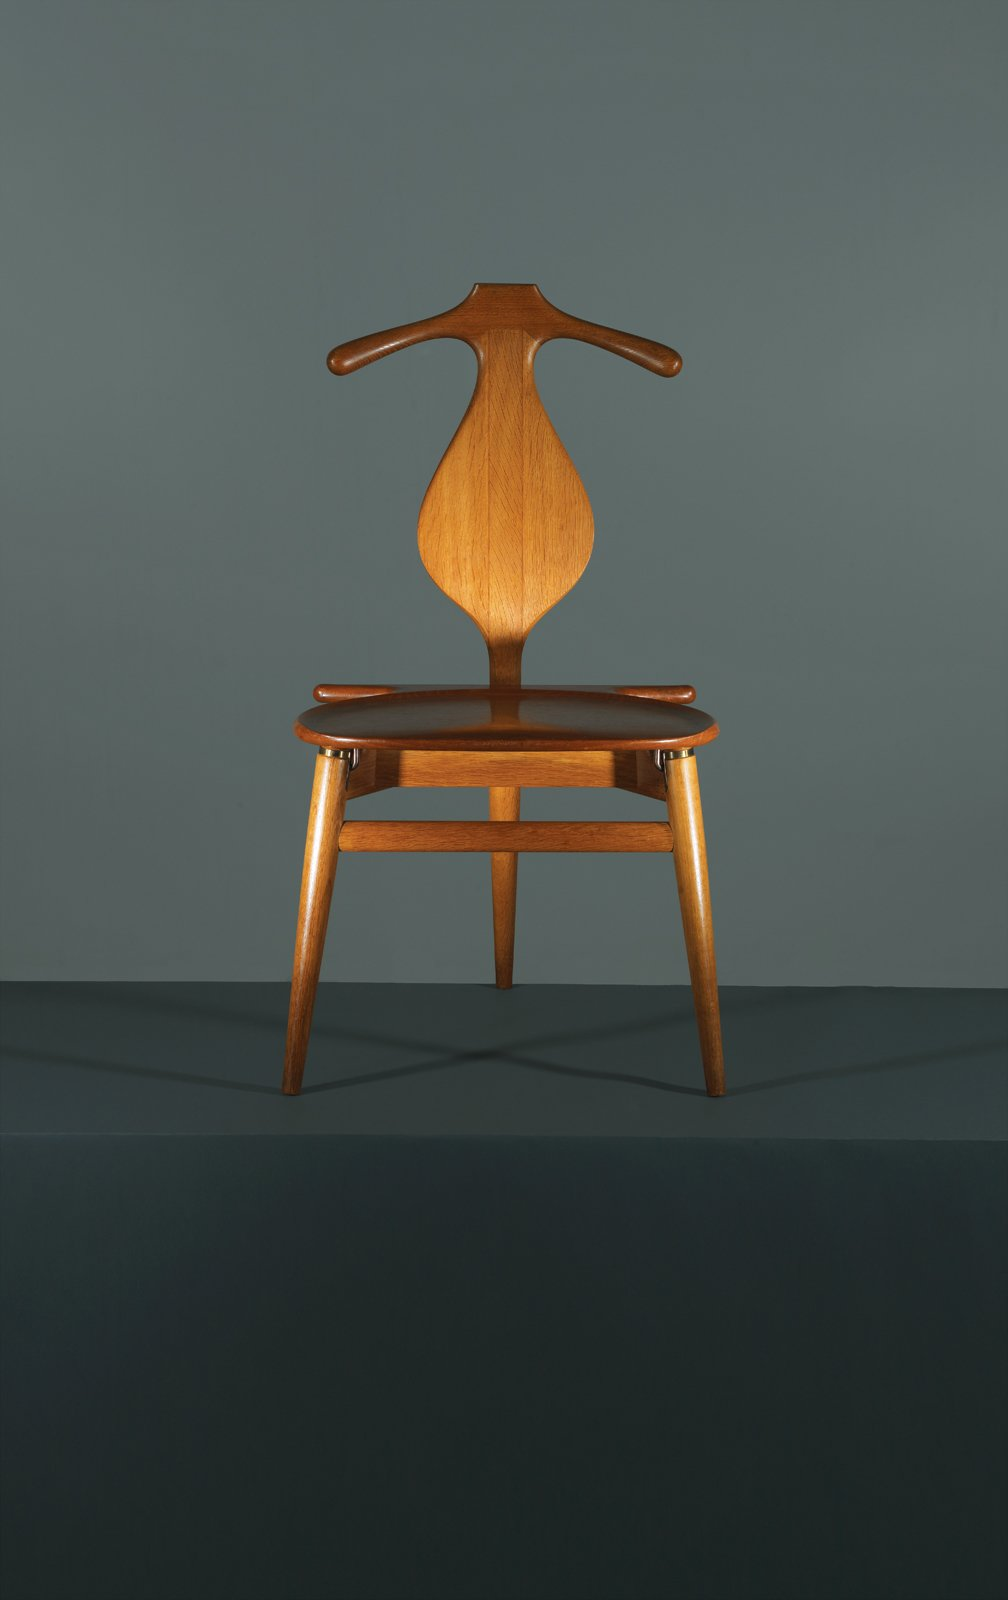 Combining the best traits of a bench and a butler, Hans Wegner's 1953 Valet chair is the one piece of midcentury-modern furniture that the fastidiously turned-out chap overlooks at his peril. Marrying formal elegance—these handsome curves have been handcrafted in PP Møbler's Danish workshop since it took over production in 1982—with a surprising functionalism, the Valet chair all but does away with the need for Jeeves. Initially a four-legged chair, Wegner decided to trim the final product and arrived at a tripod design, though he maintained the initial design when Danish King Frederick IX requested his own. Manufactured by PP Møbler.  Photo 5 of 9 in 8 Iconic Chairs by Hans Wegner from This Way, Gentlemen